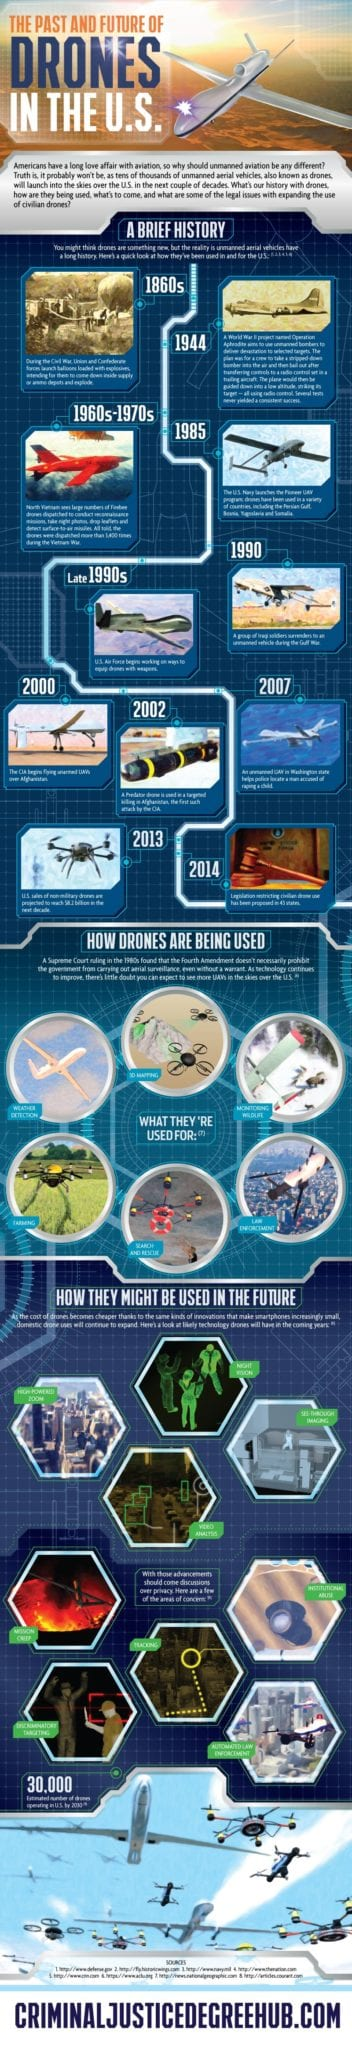 The Past and Future of Drones in the U.S.